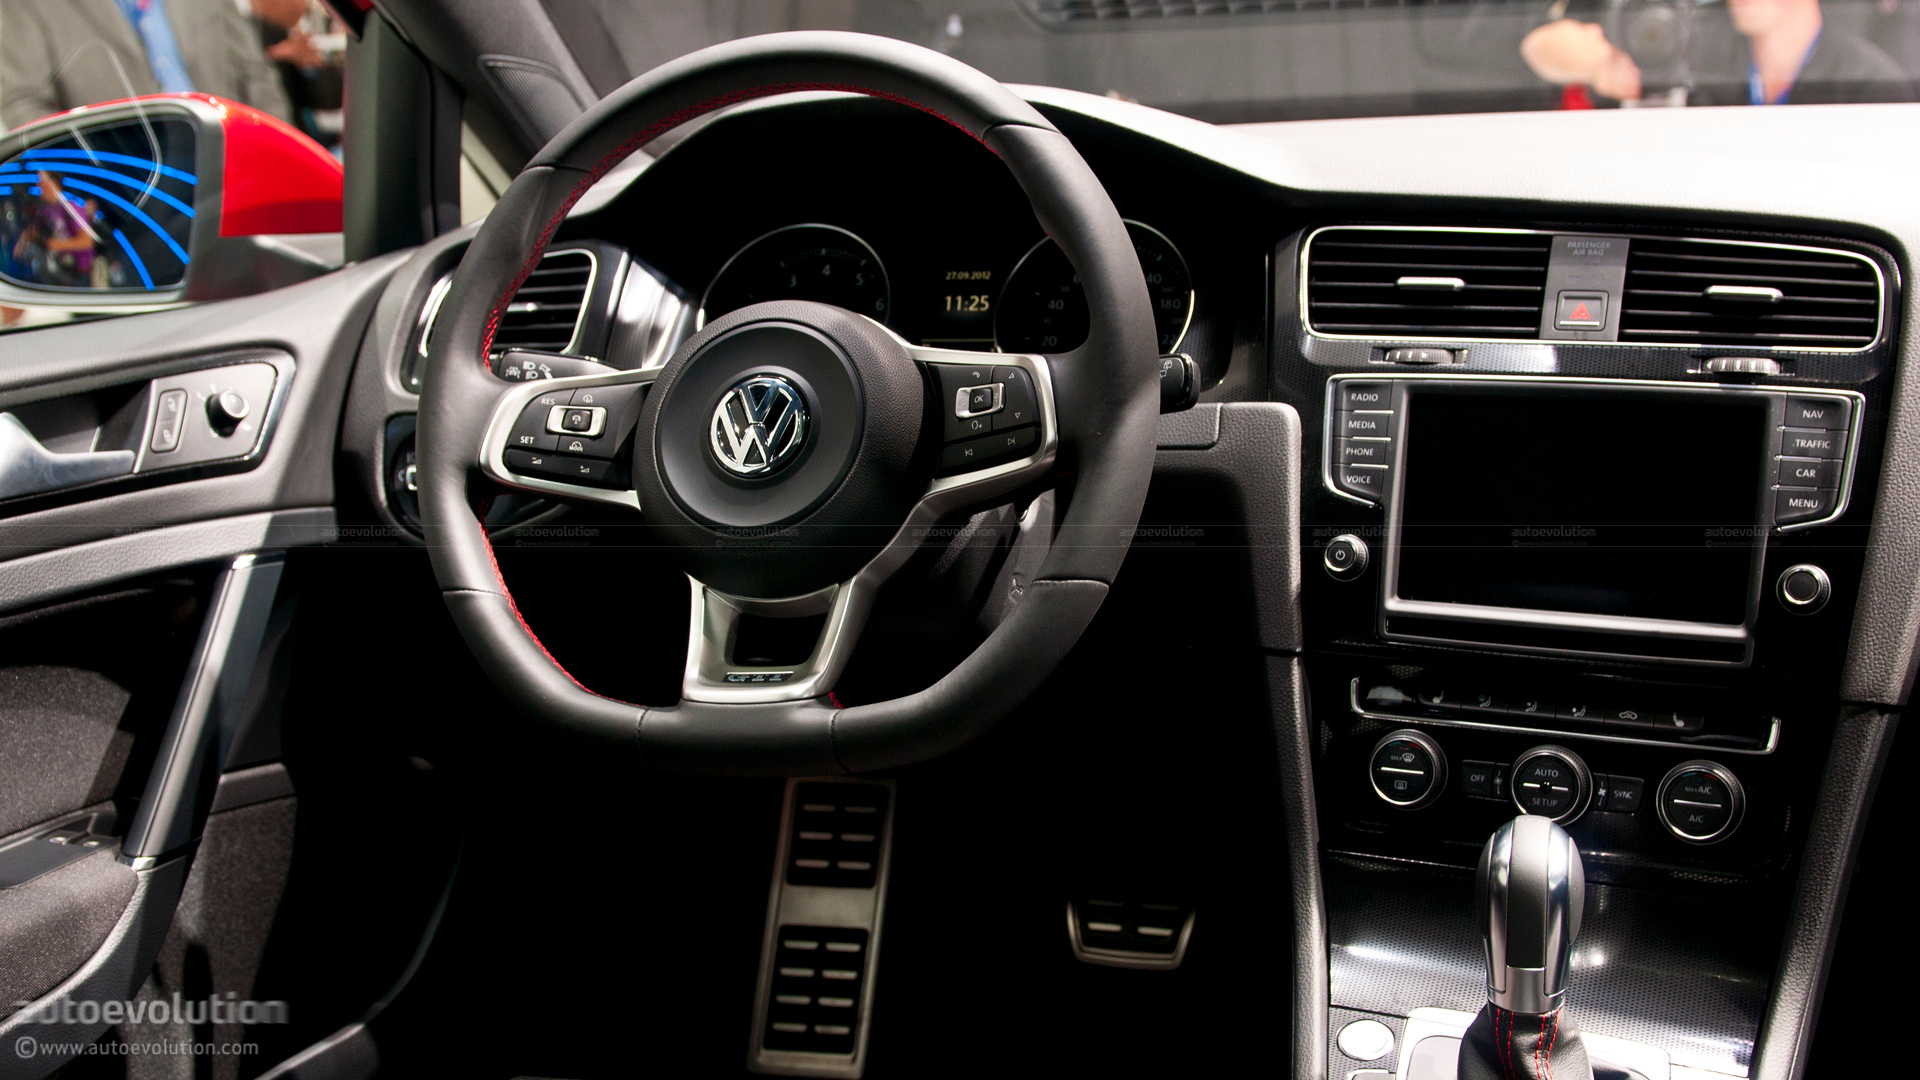 Paris 2012: Volkswagen Golf VII GTI Concept [Live Photos] - autoevolution